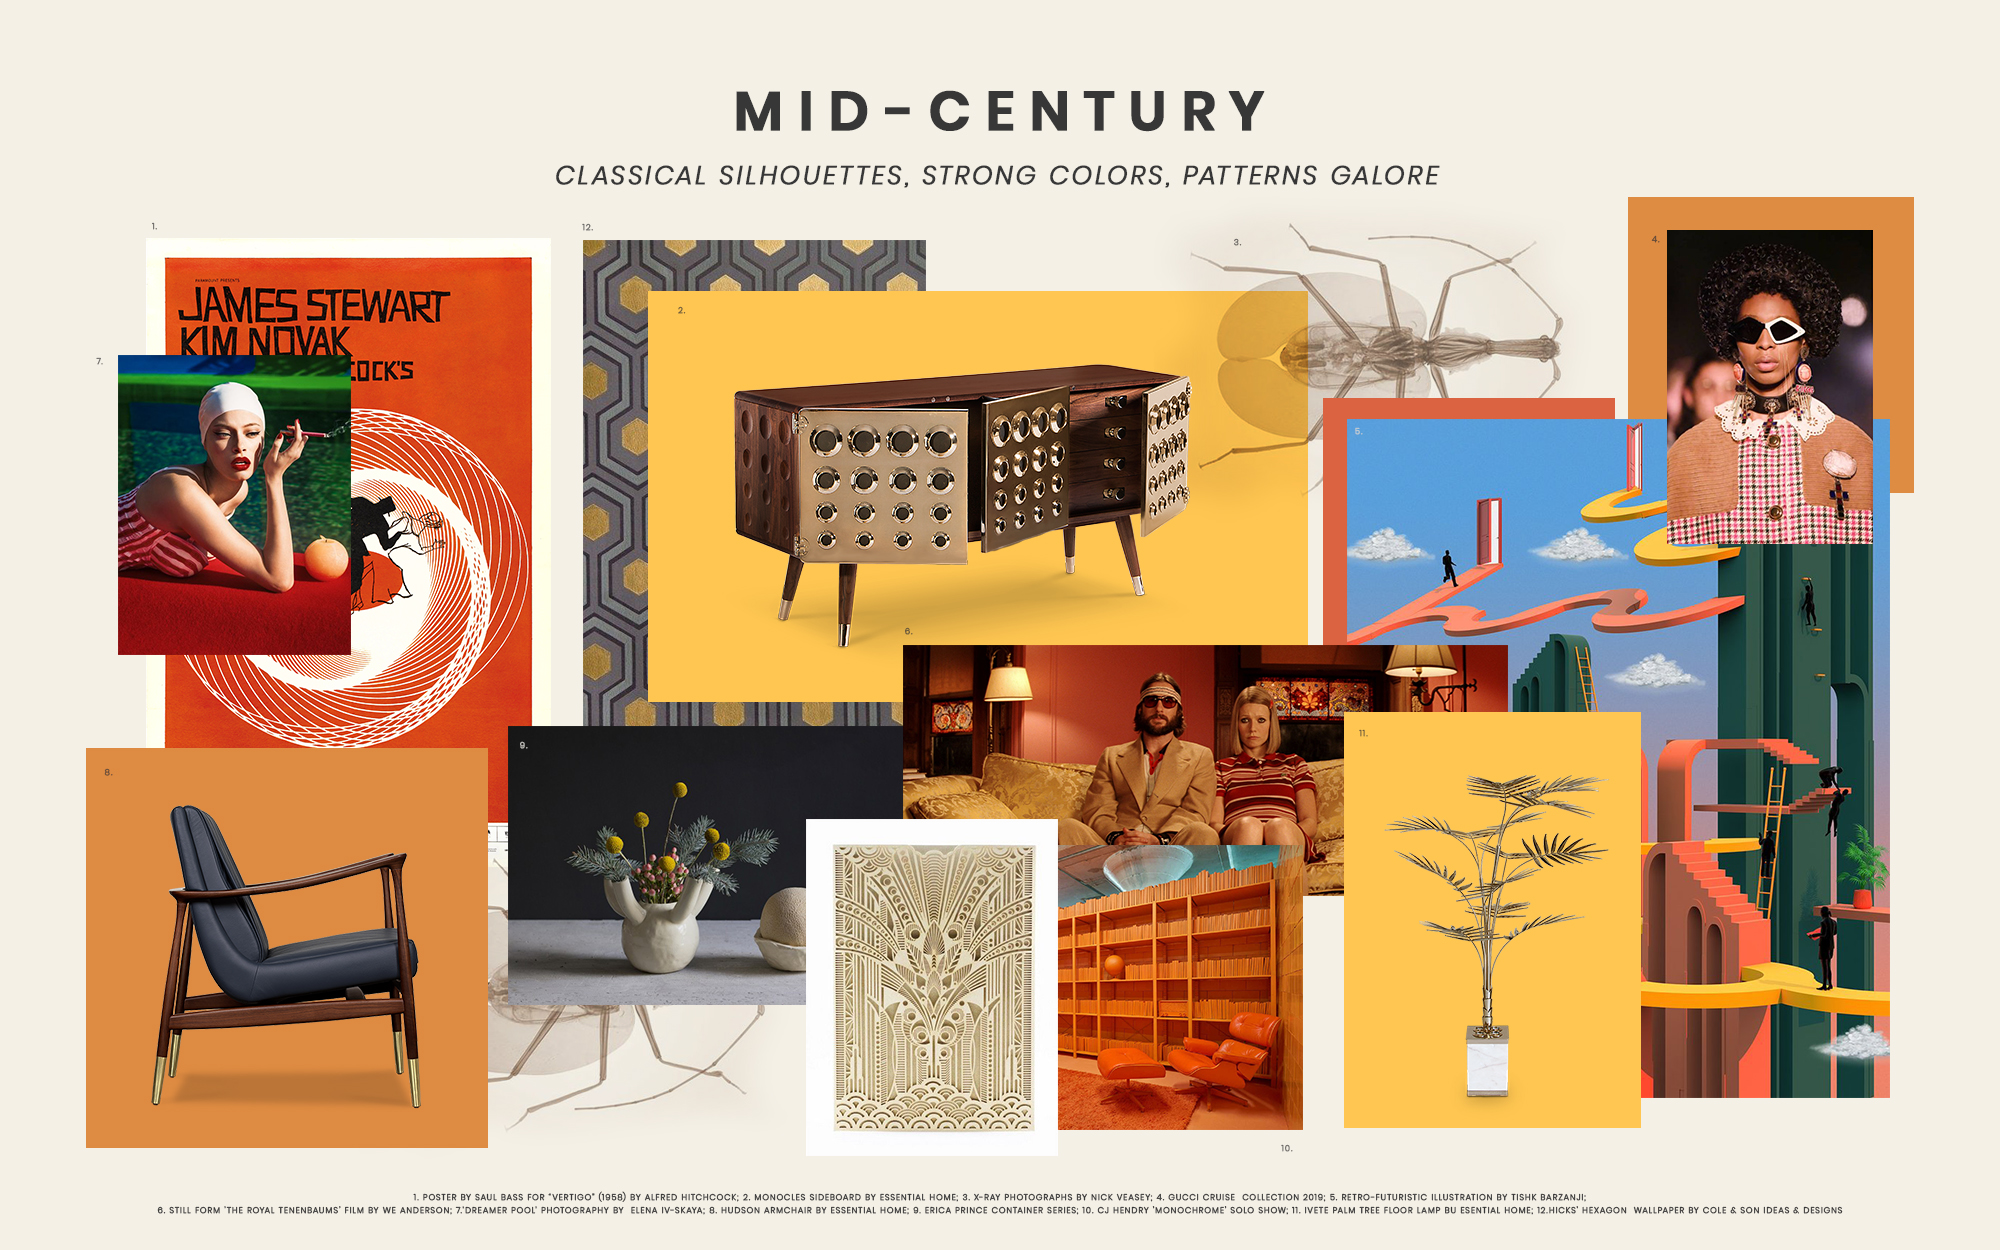 Why Essential Home Is Your #1 Mid-Century Furniture Brand